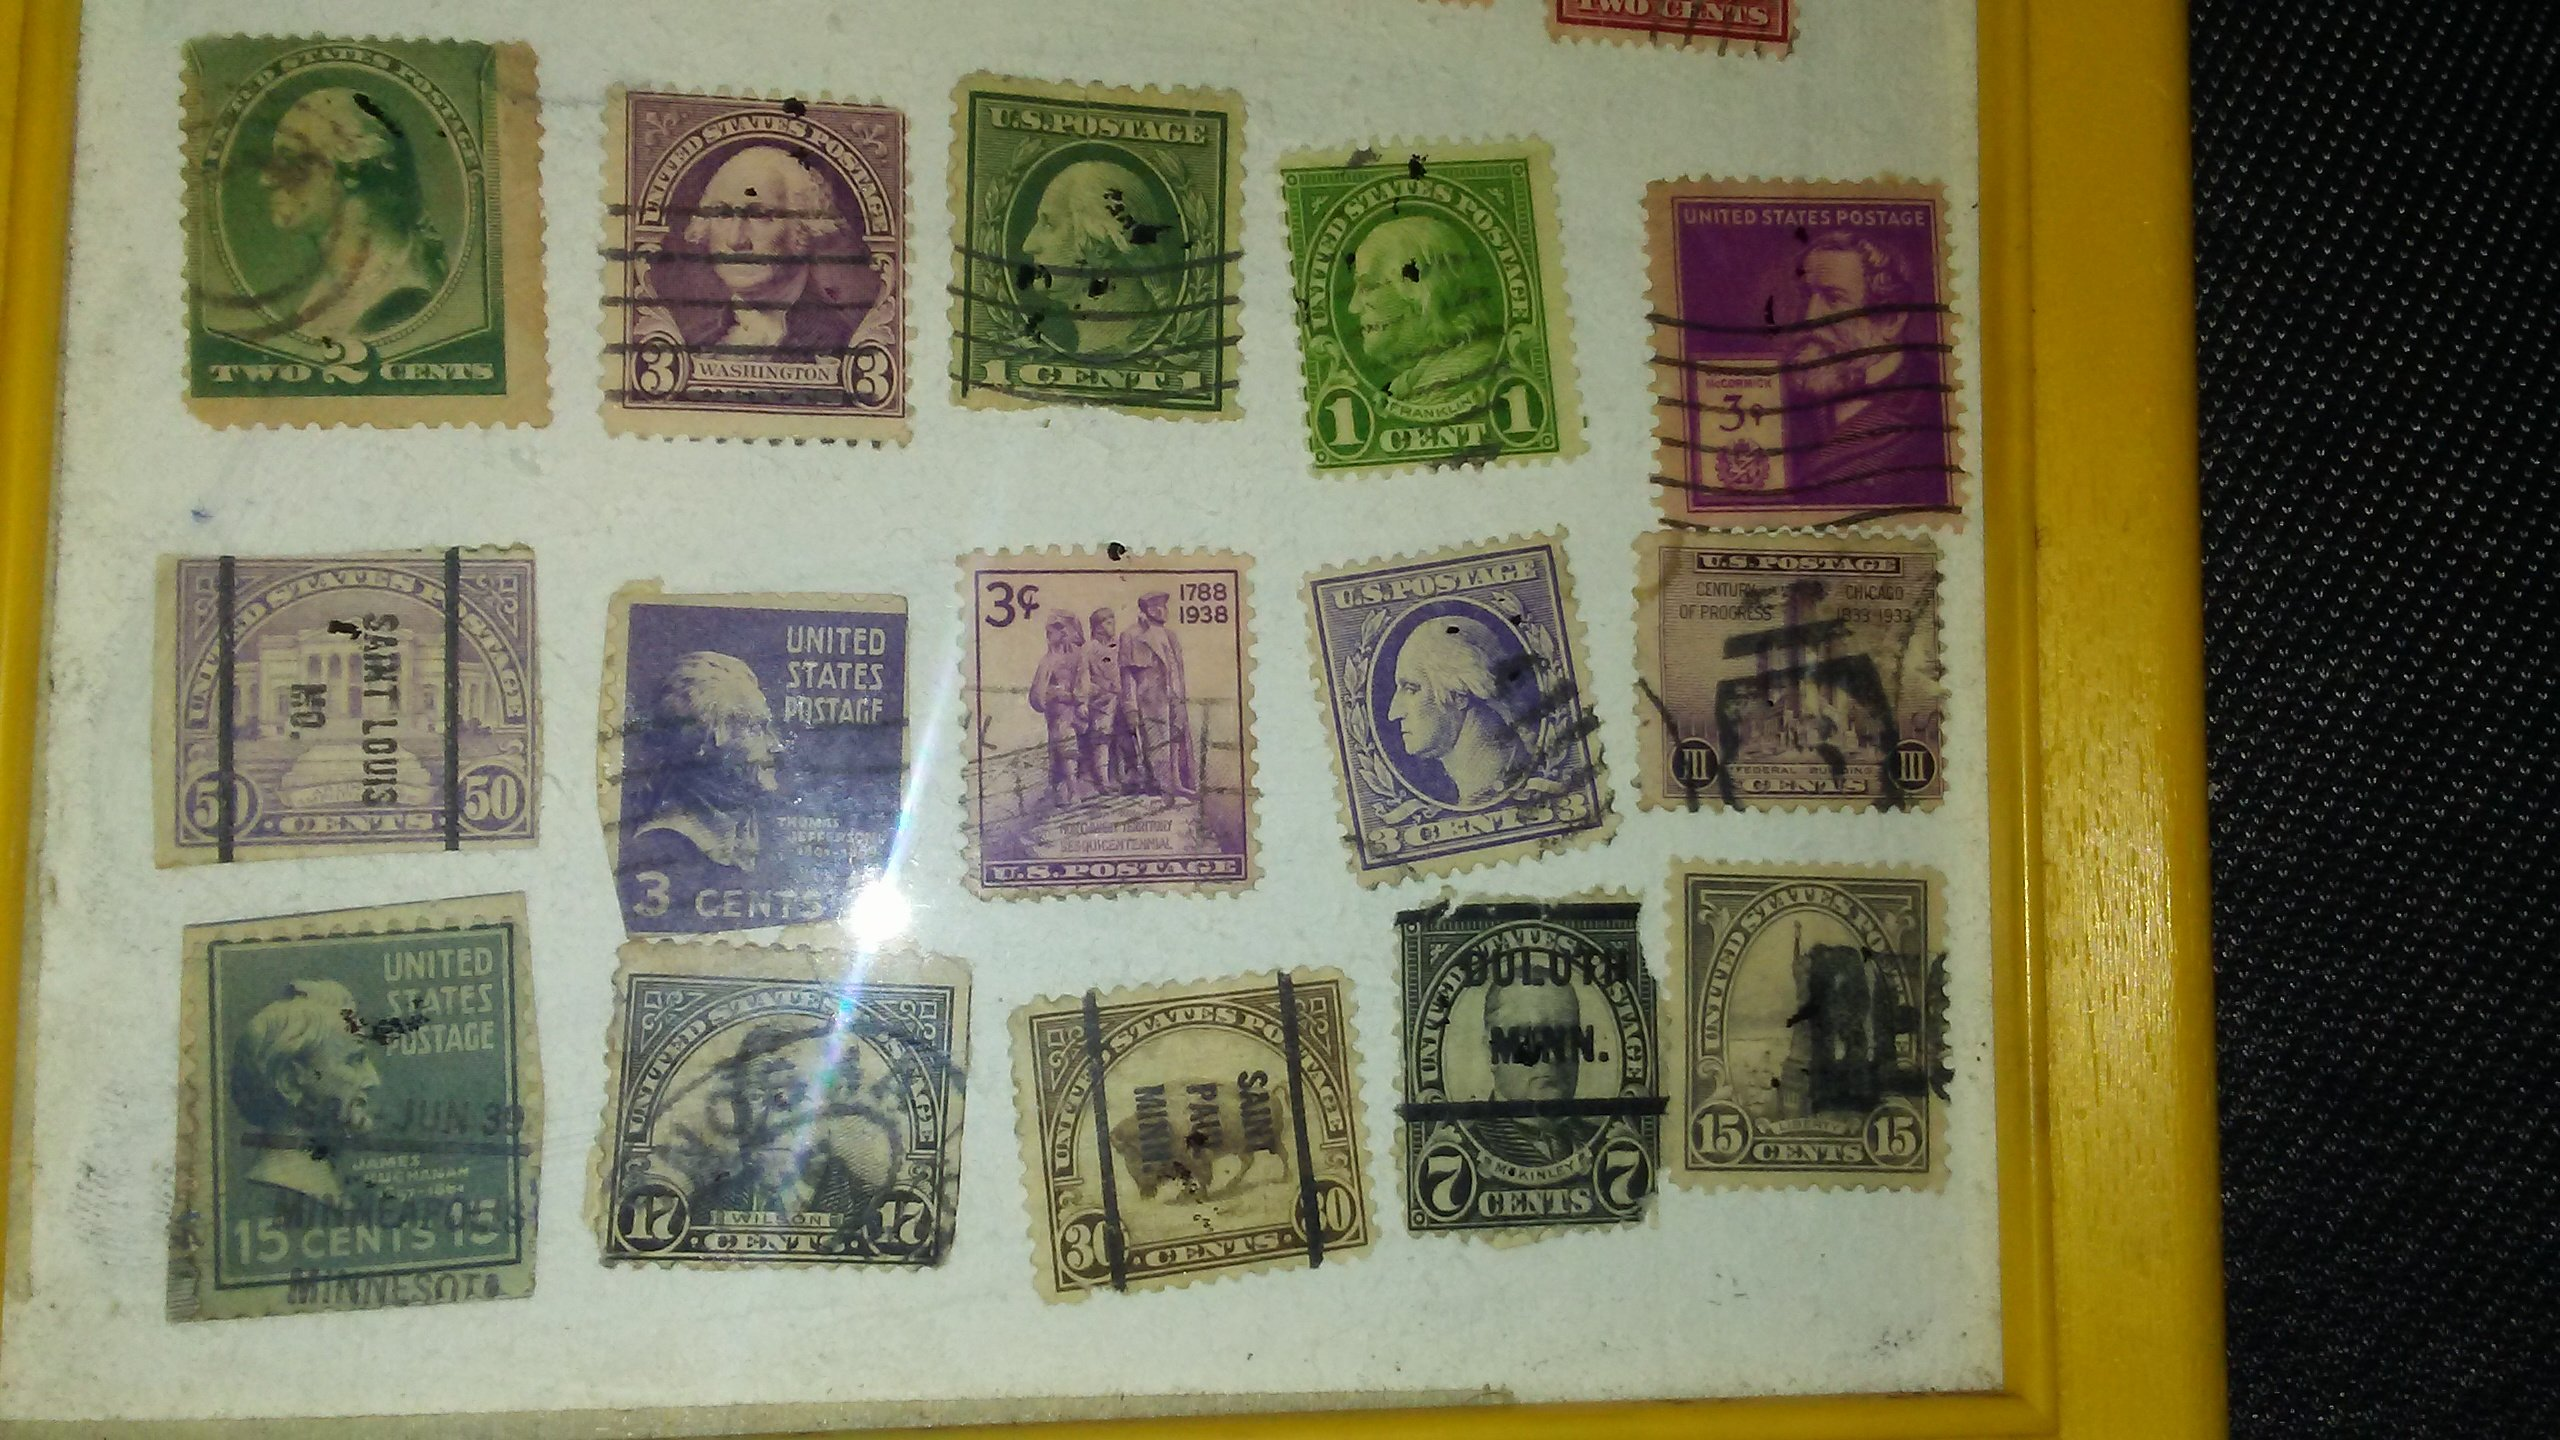 I Would Like To Know What My Stamps Are Worth Also Is It